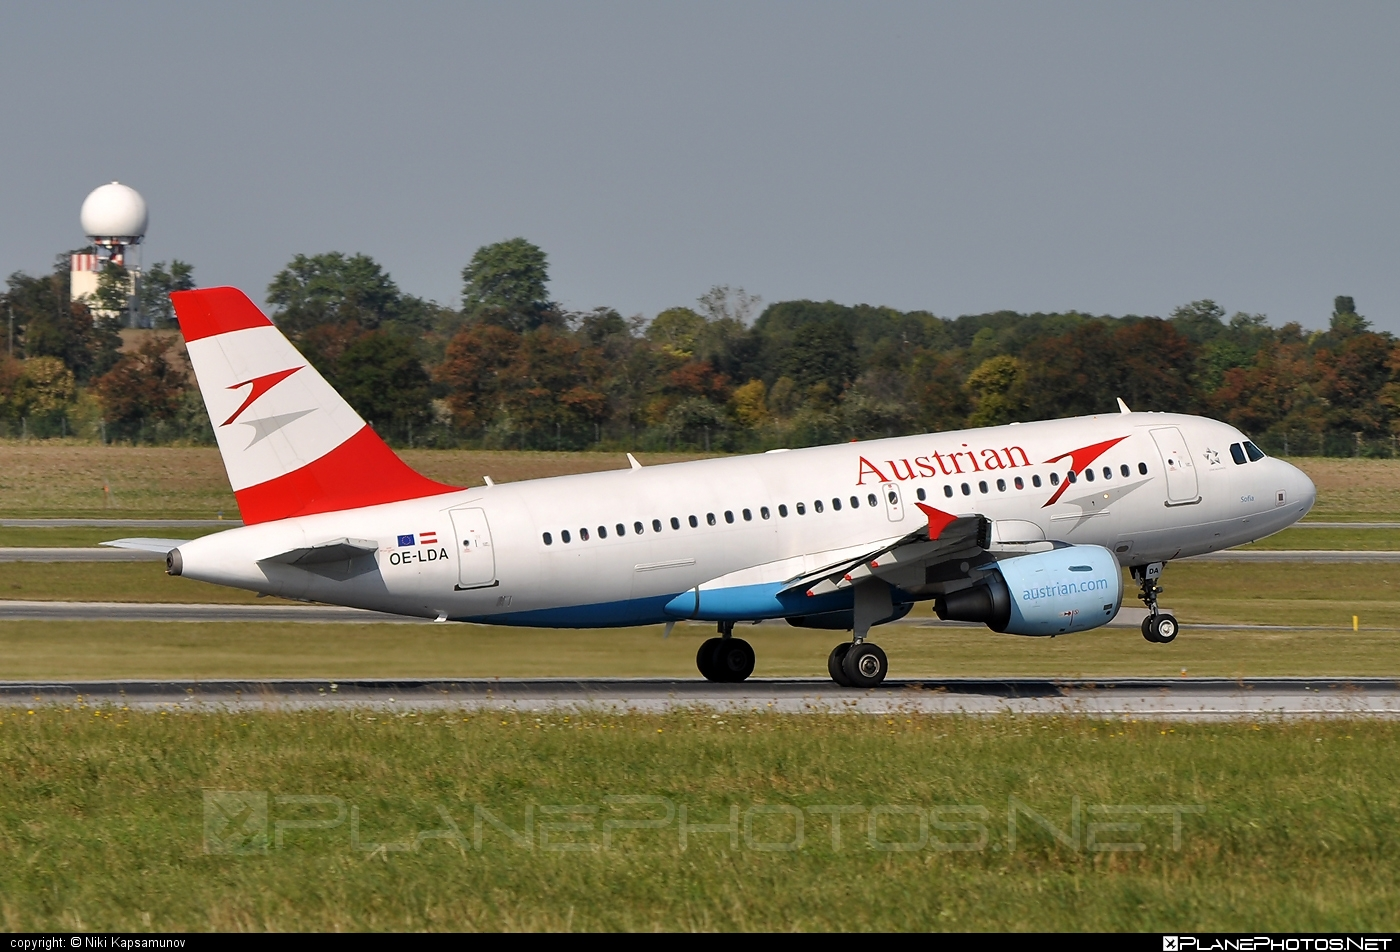 Airbus A319-112 - OE-LDA operated by Austrian Airlines #a319 #a320family #airbus #airbus319